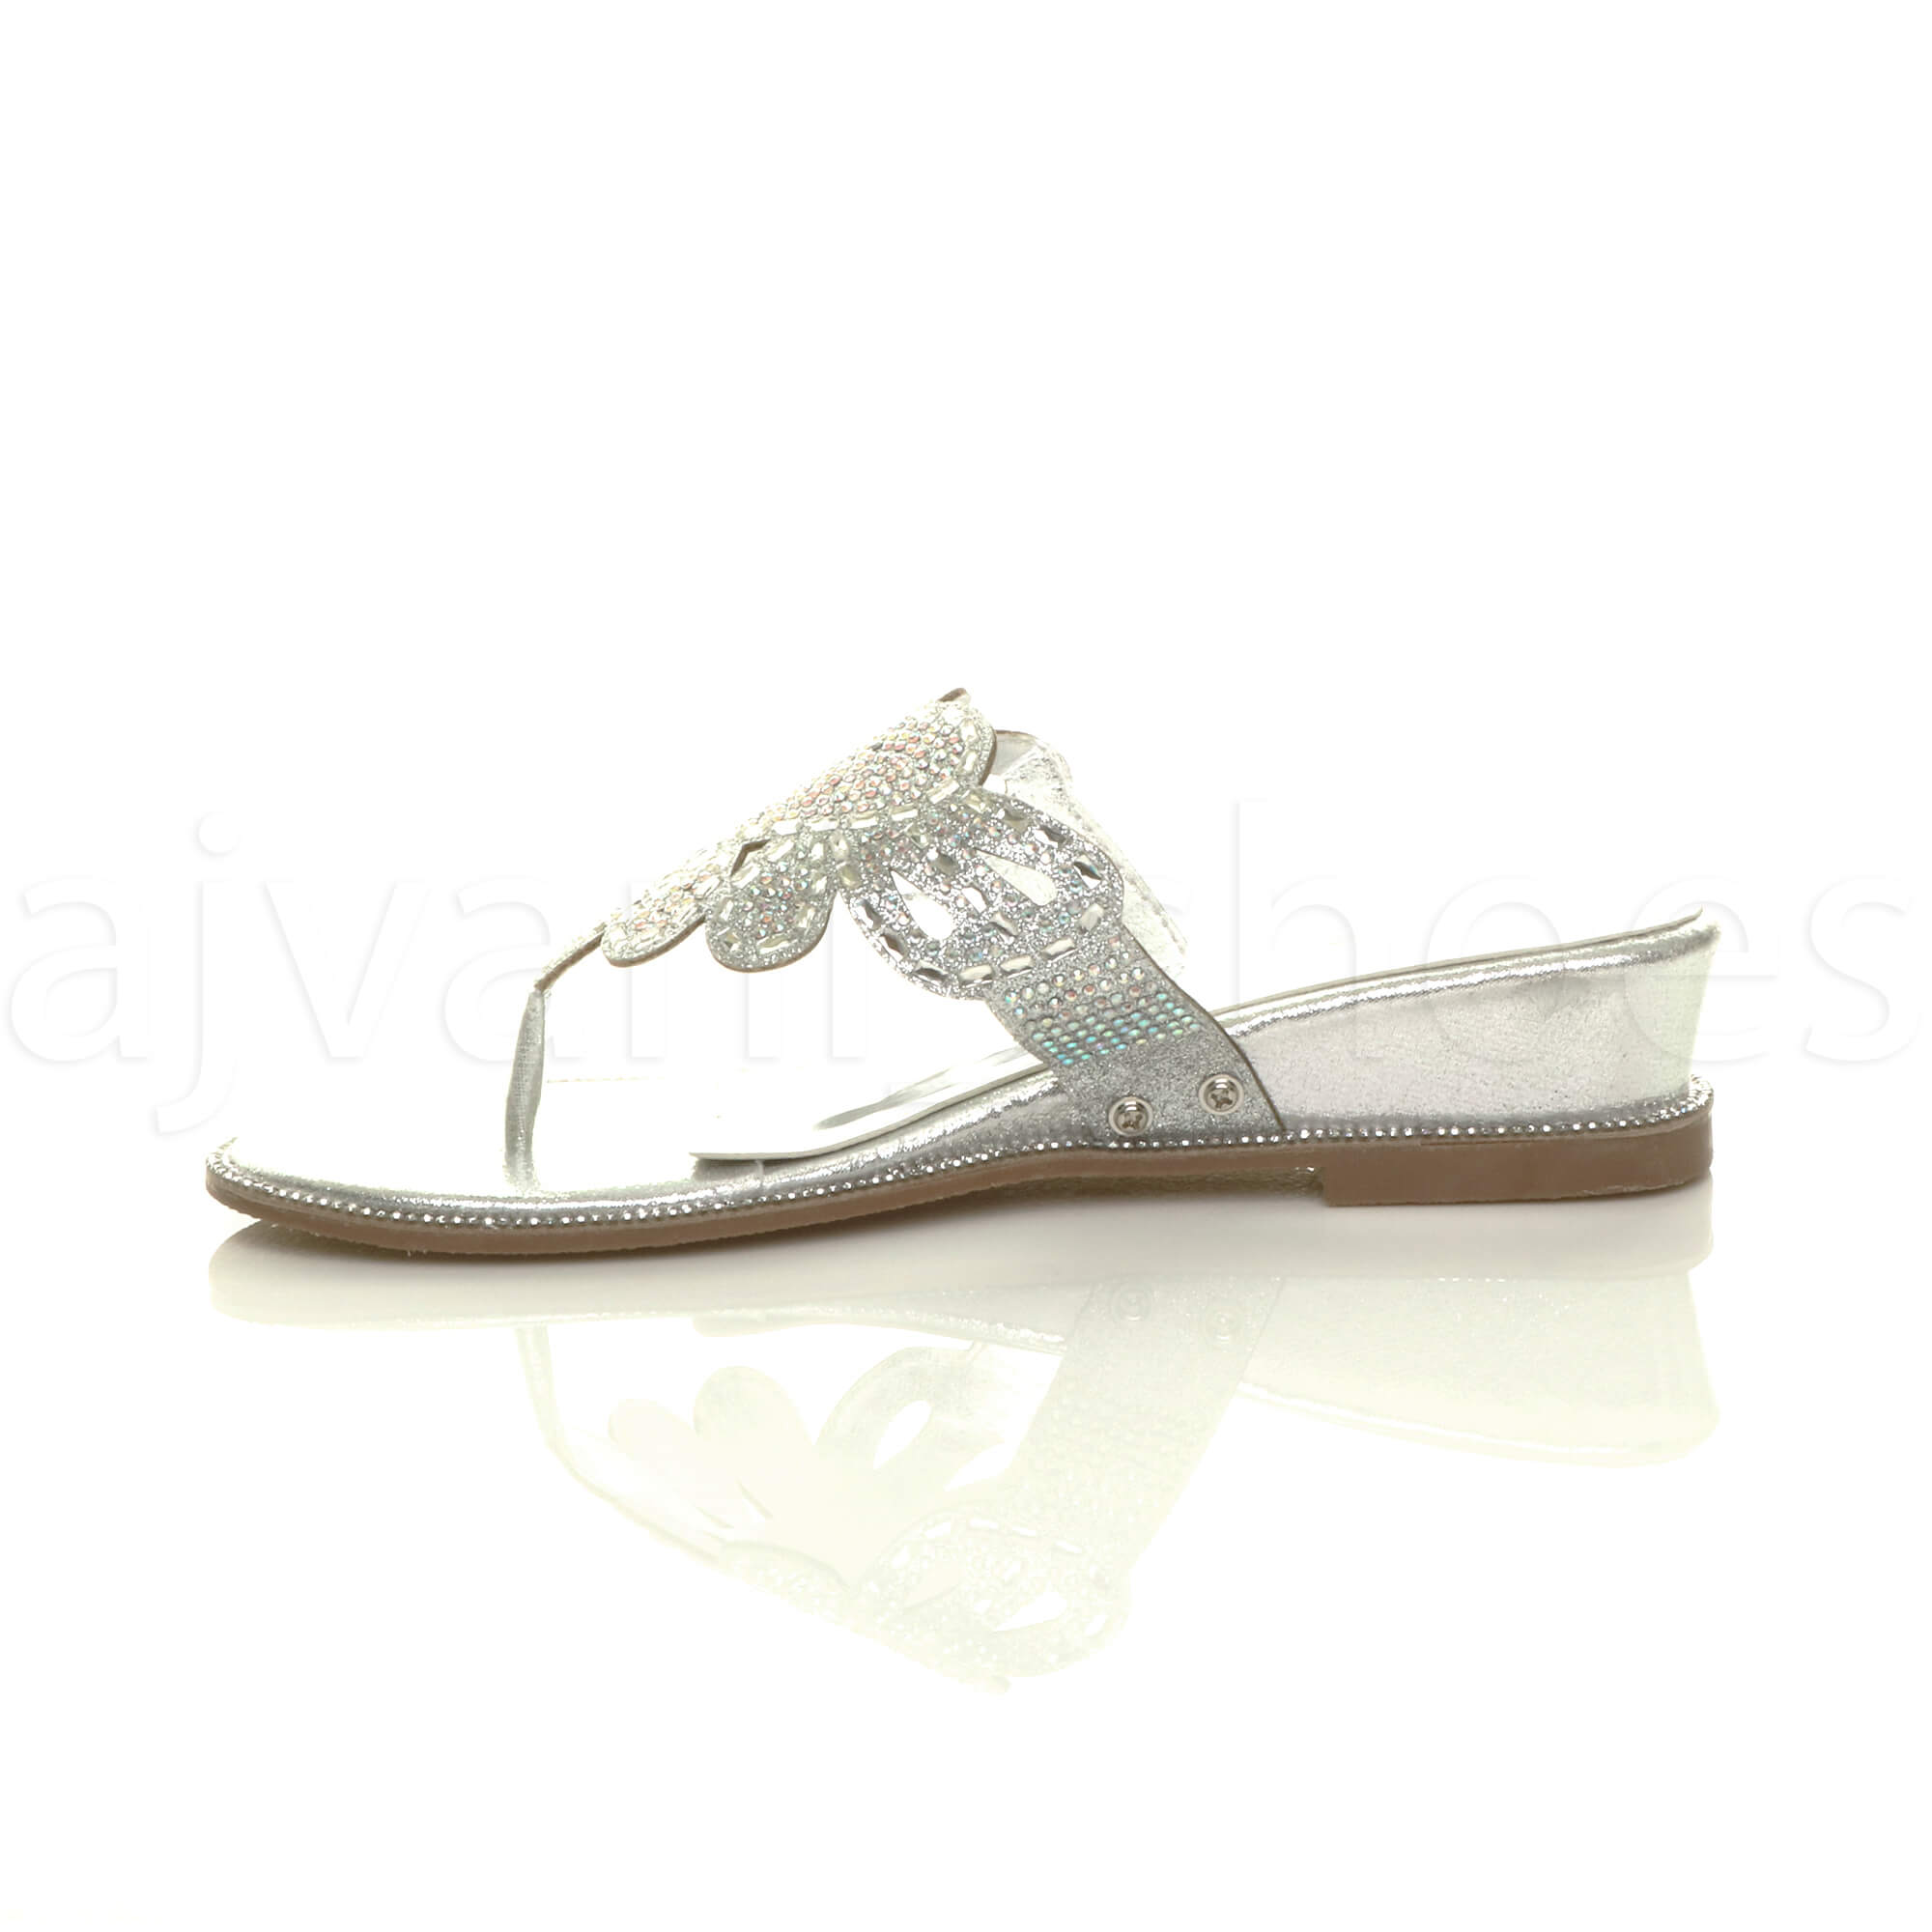 WOMENS-LADIES-LOW-MID-WEDGE-HEEL-DIAMANTE-EVENING-TOE-POST-SANDALS-MULES-SIZE thumbnail 20